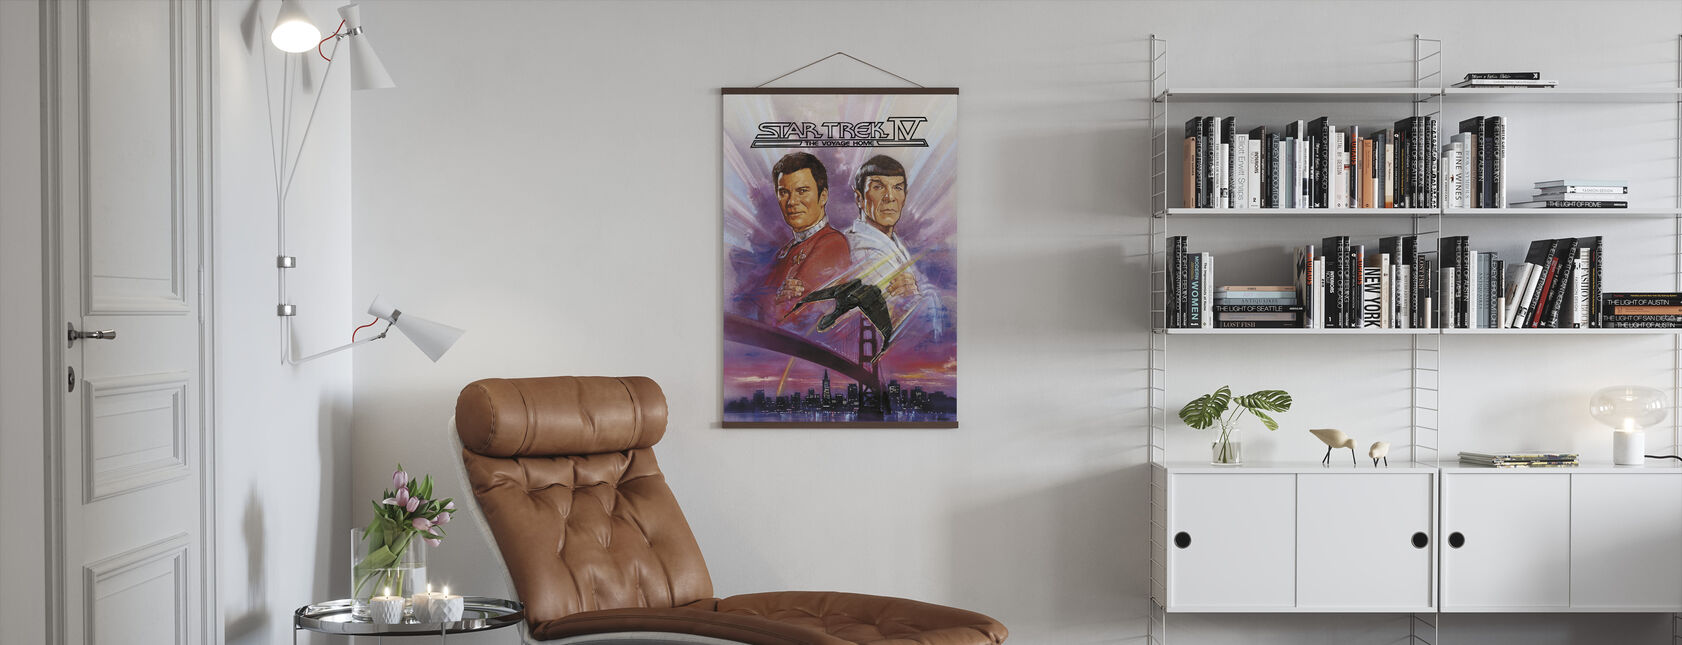 Voyage Home - Poster - Living Room